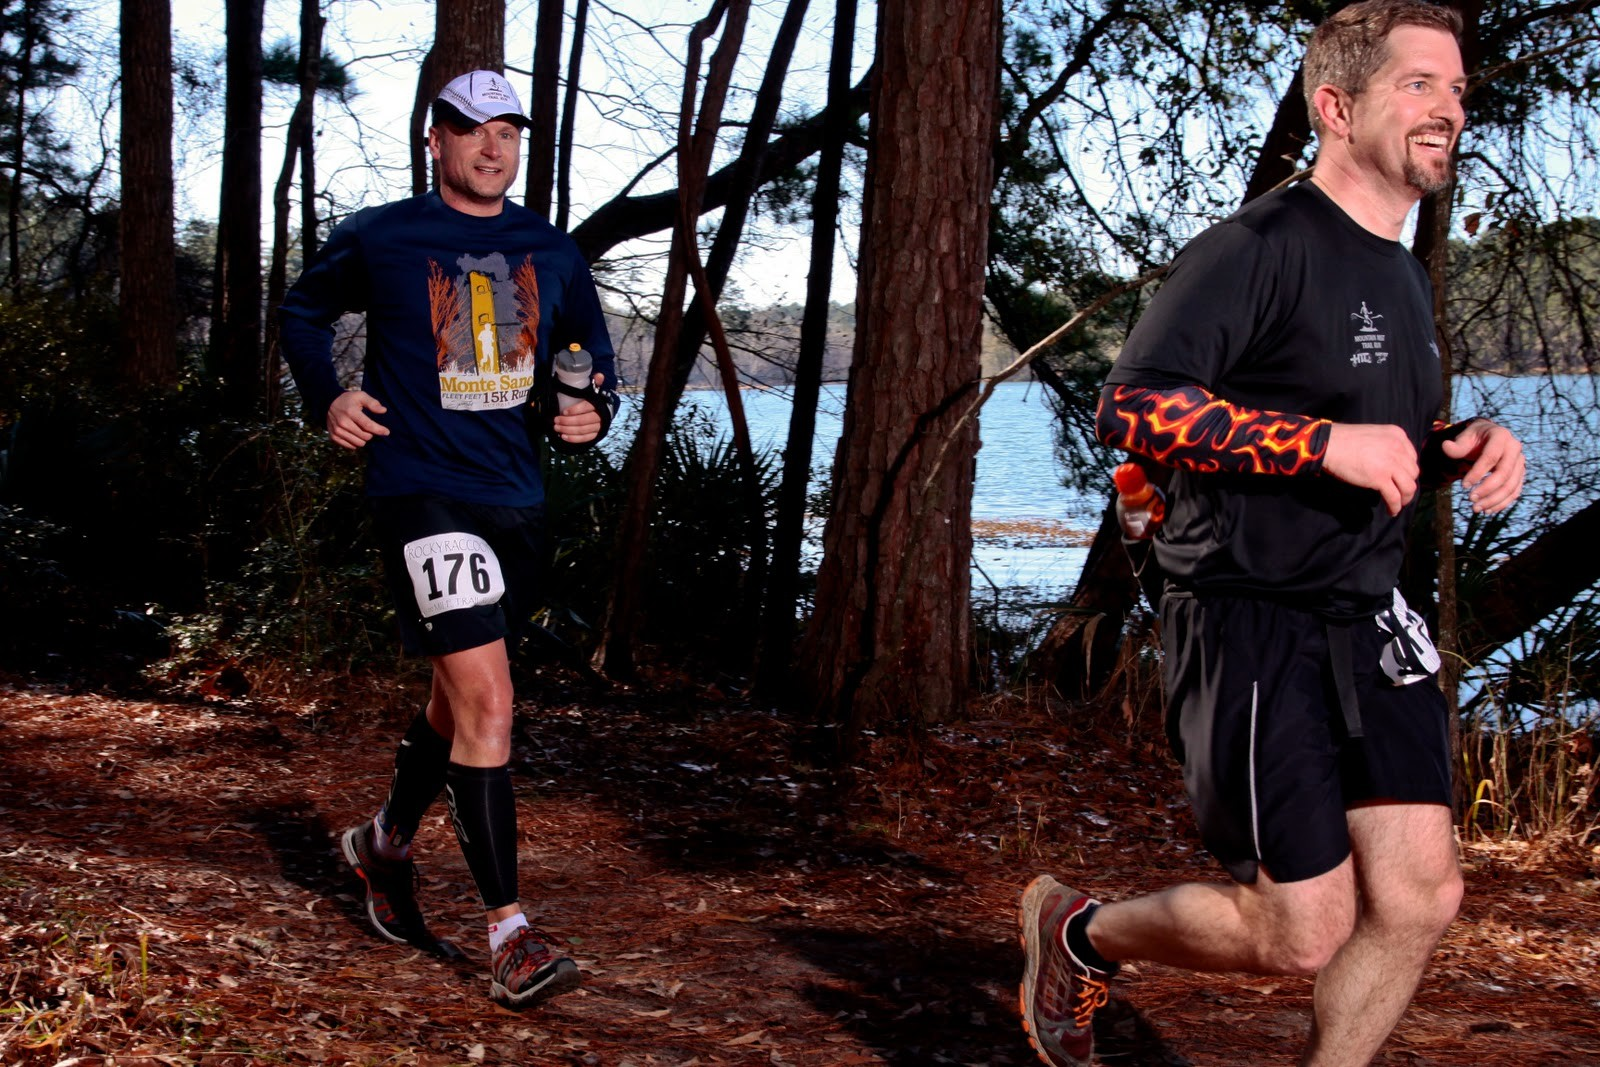 Fastest 100 Mile Trail Run in North American Set For This weekend